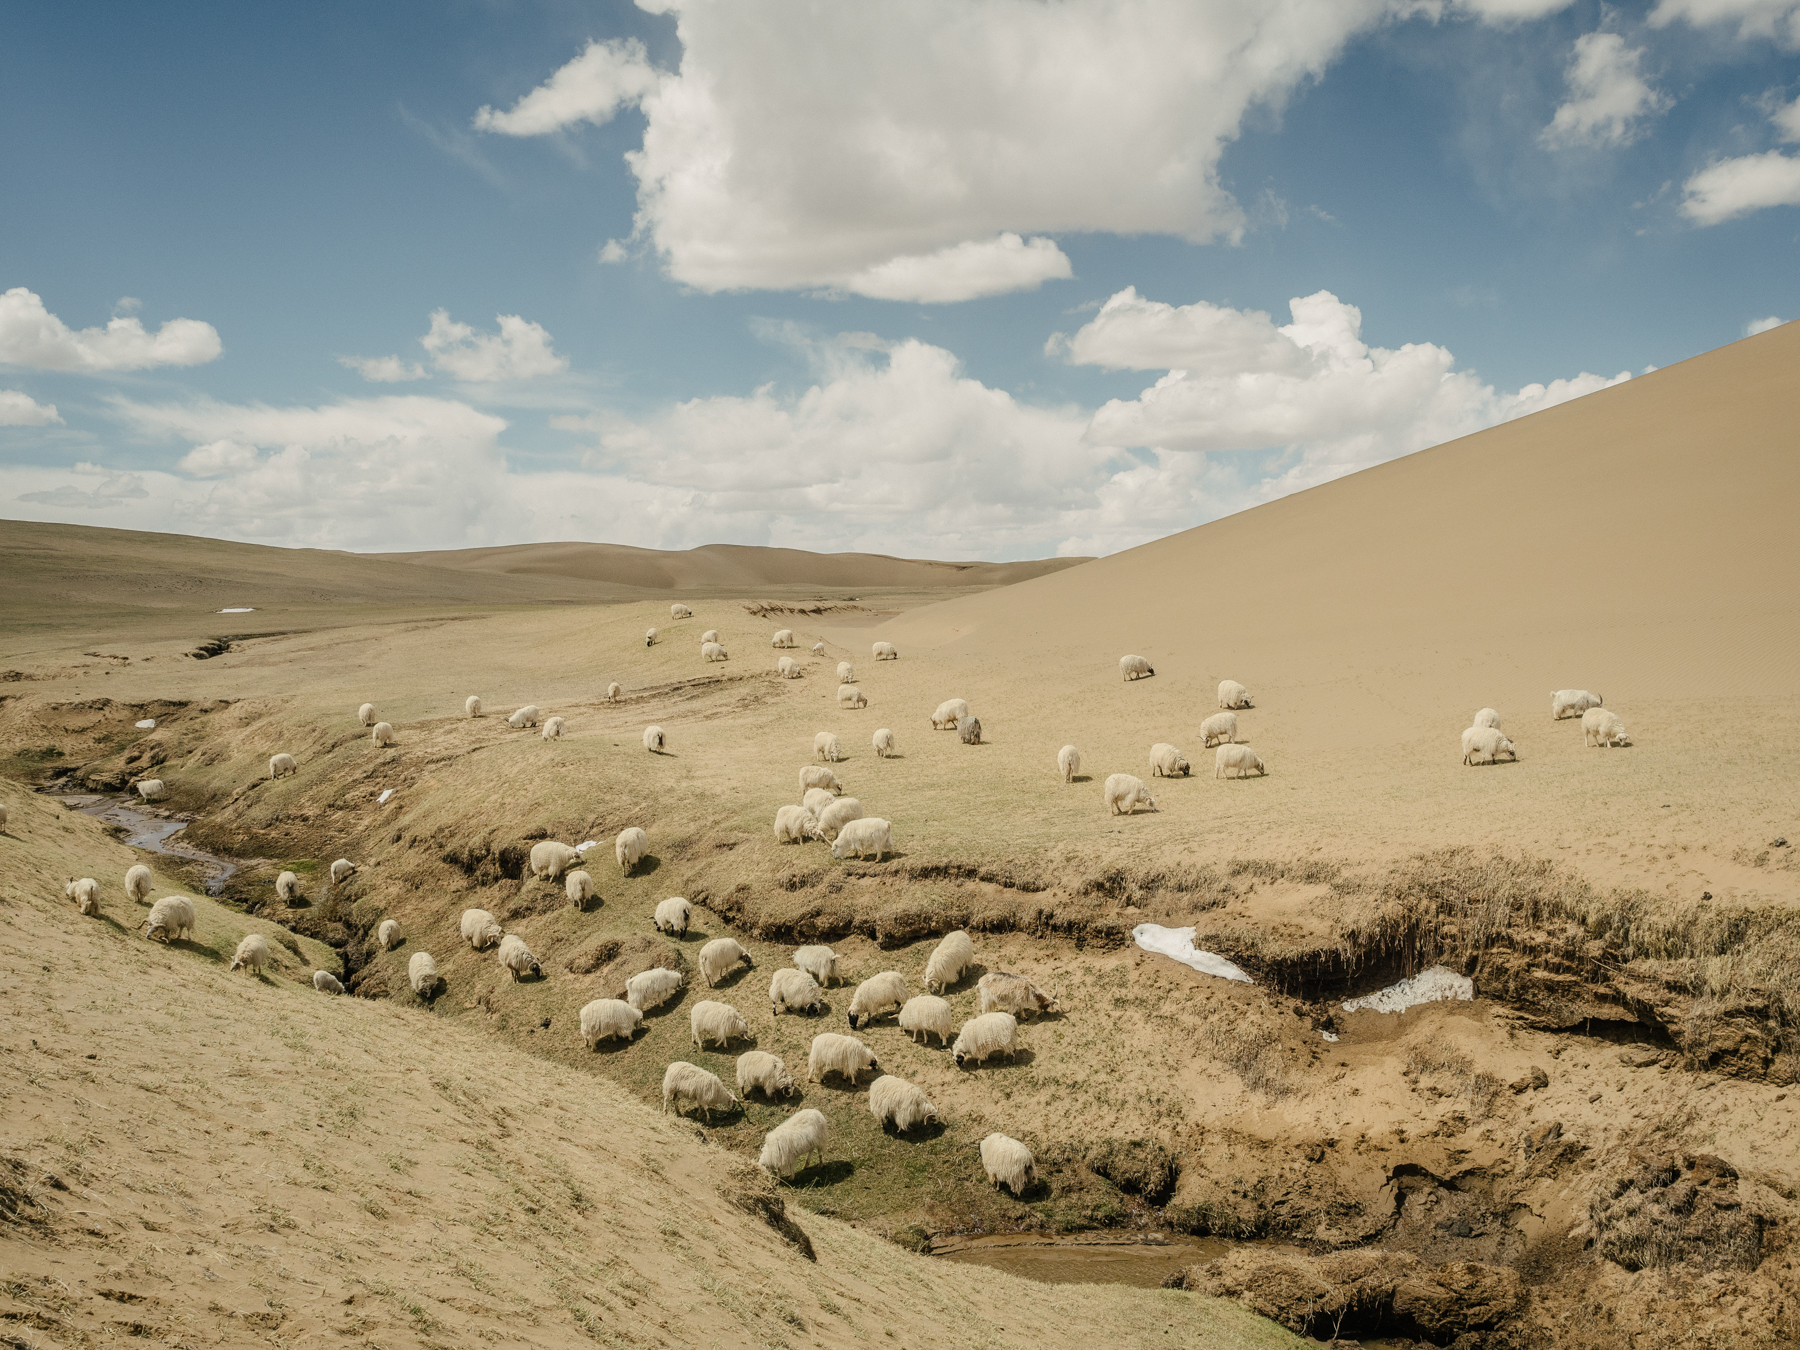 Sheep at the edge of a receding grassland. Experts are divided over whether overgrazing in this fragile region is one of the major causes of desertification.